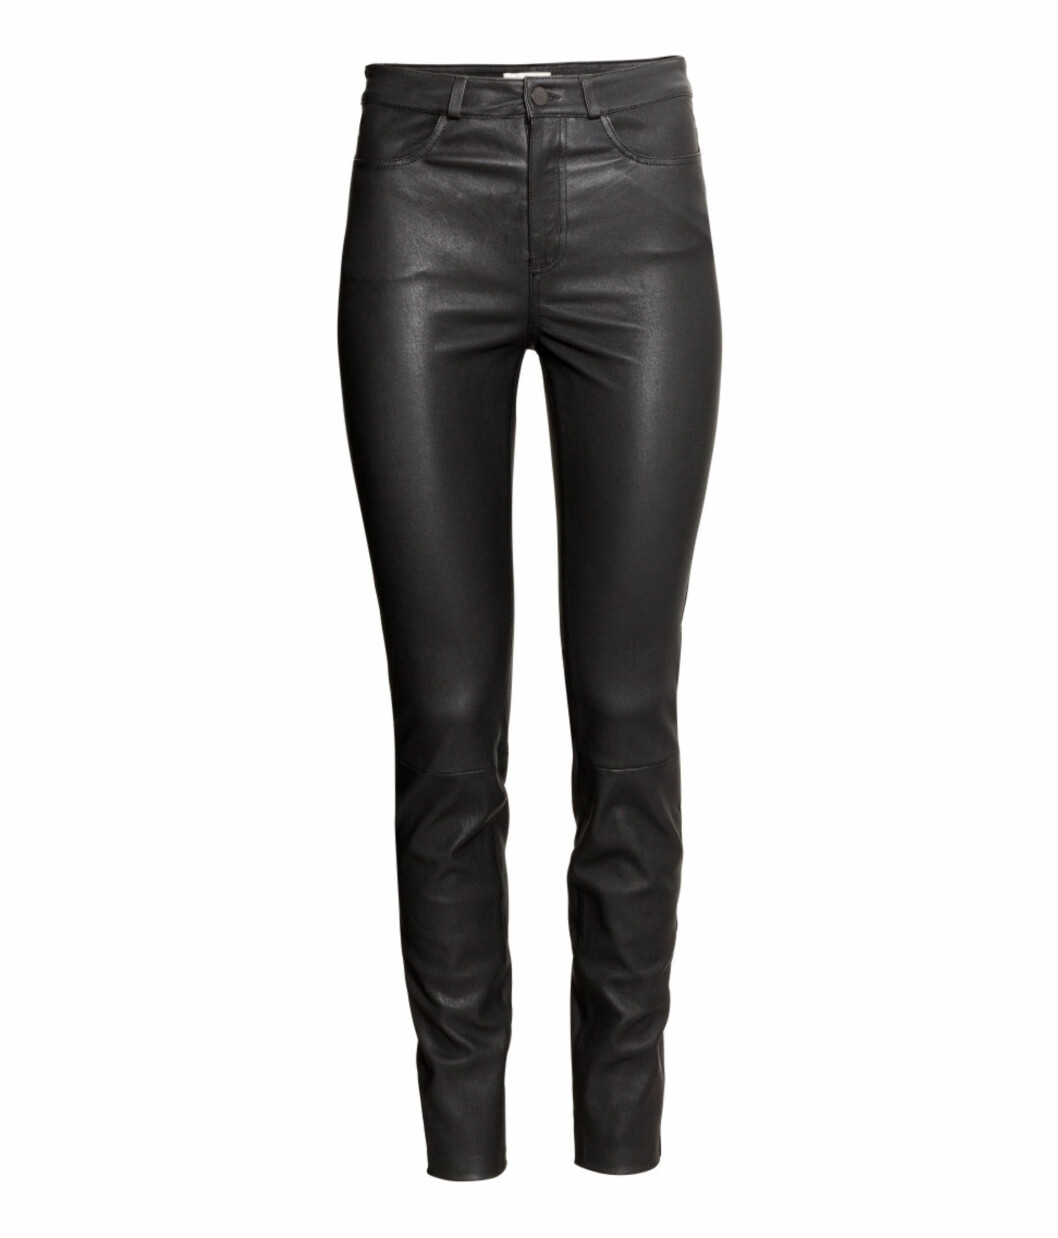 <strong>Skinnbukse fra H&M | kr 2499 | http:</strong>//www.hm.com/no/product/31630?article=31630-A&cm_vc=SEARCH